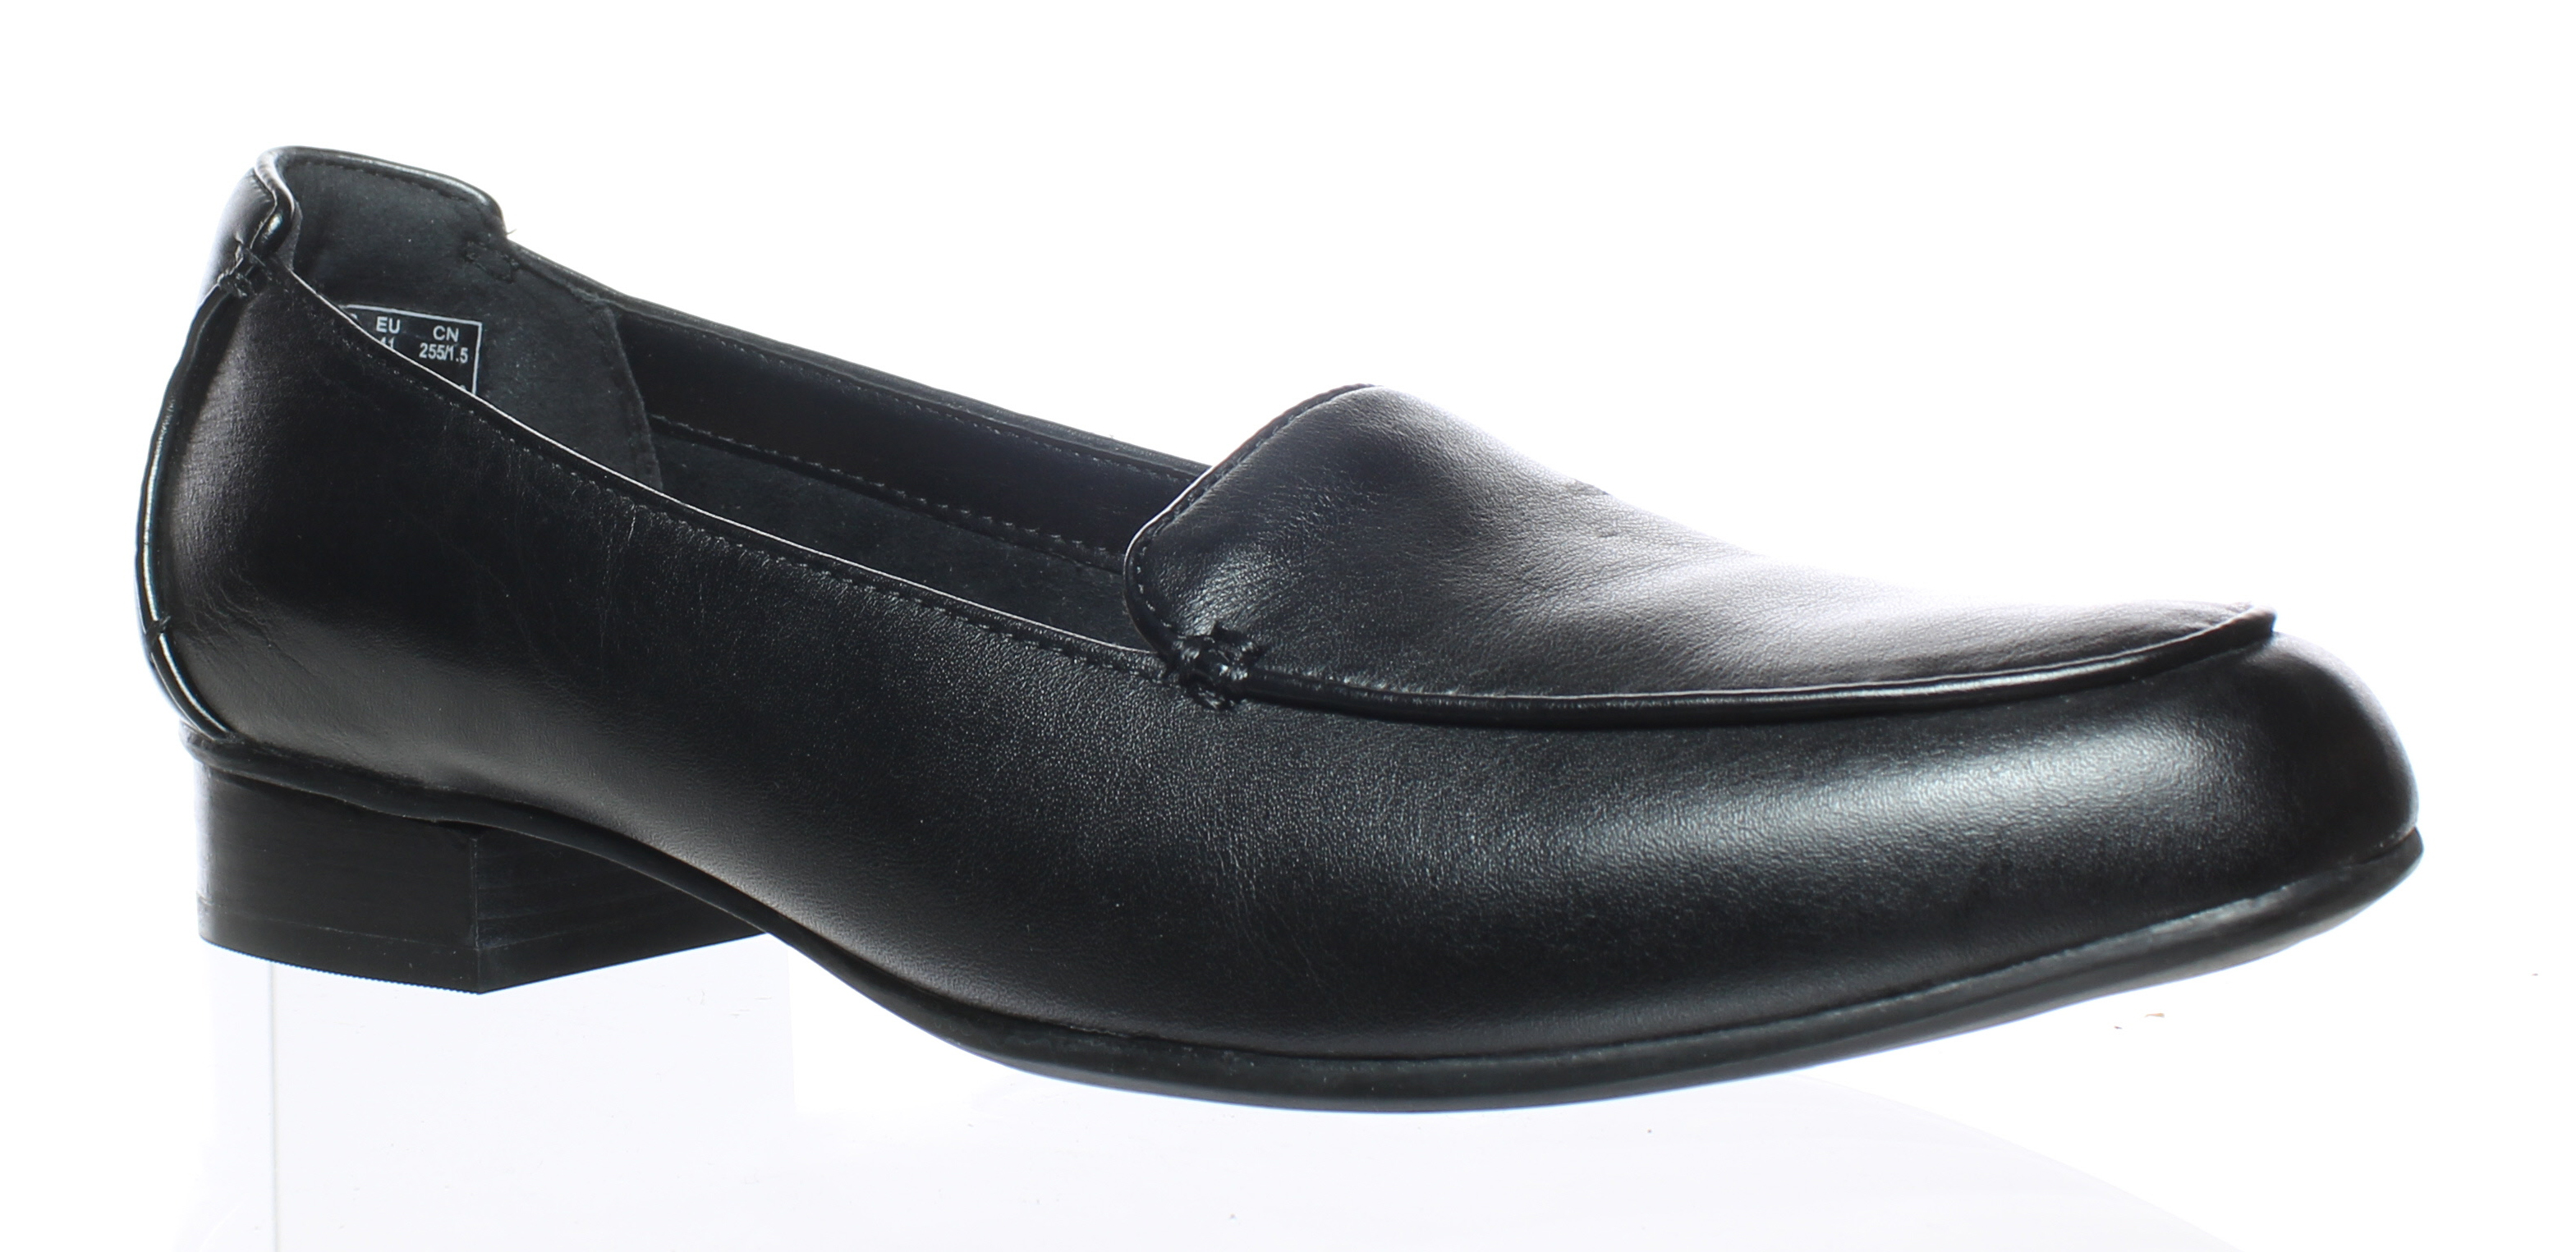 3b4ed8edecc Clarks Womens Keesha Luca Black Leather Loafers Size 9.5 (42774)